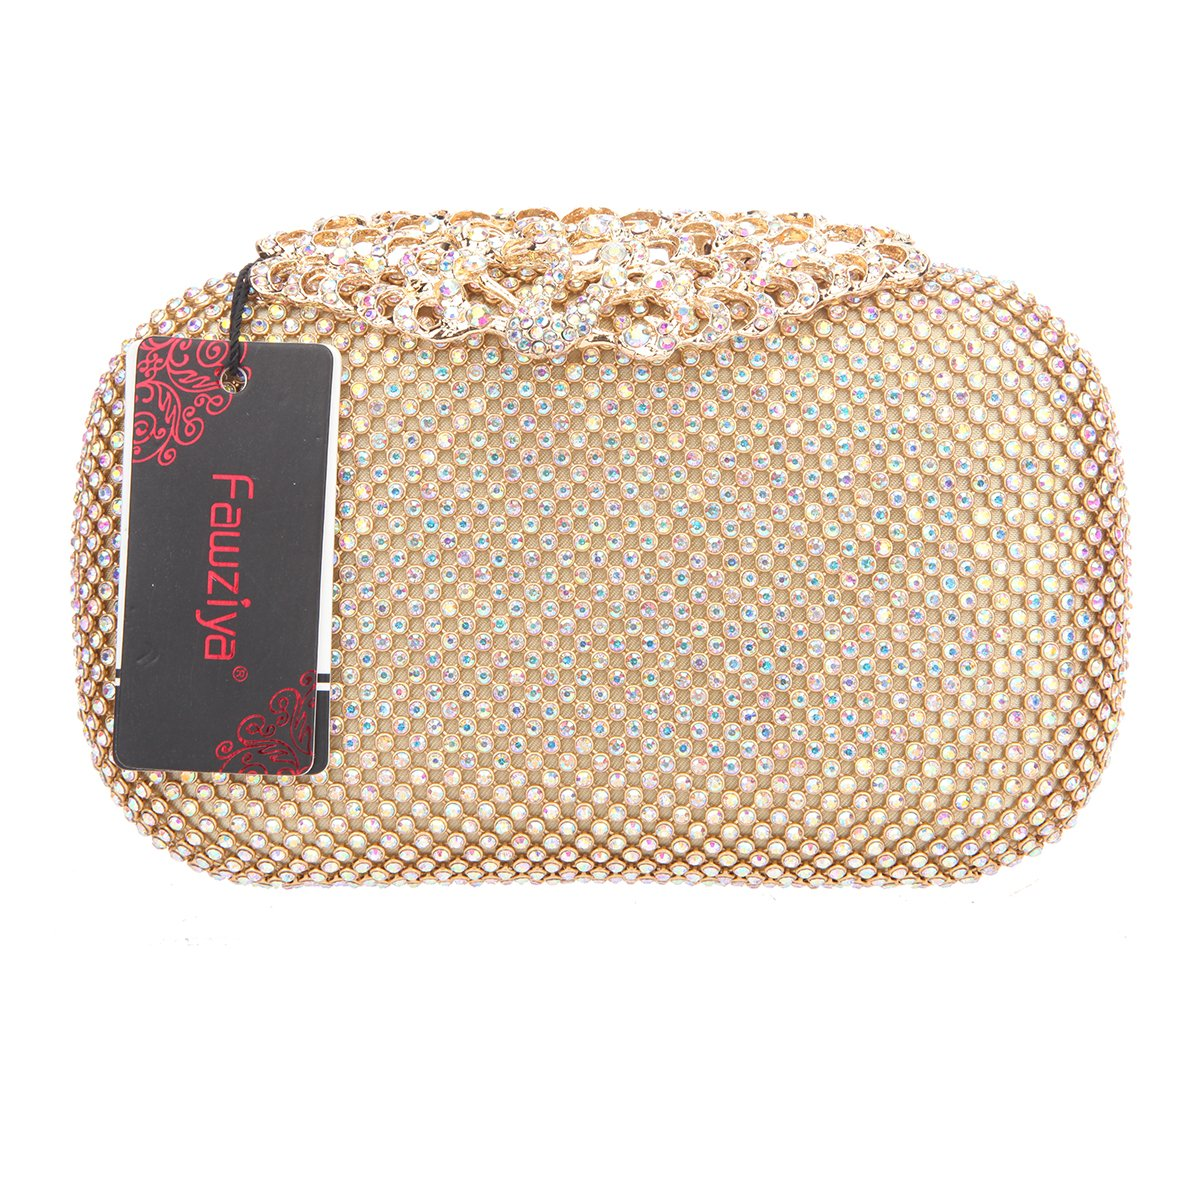 Amazon.com: fawziya pavo real embrague cartera Rhinestones ...